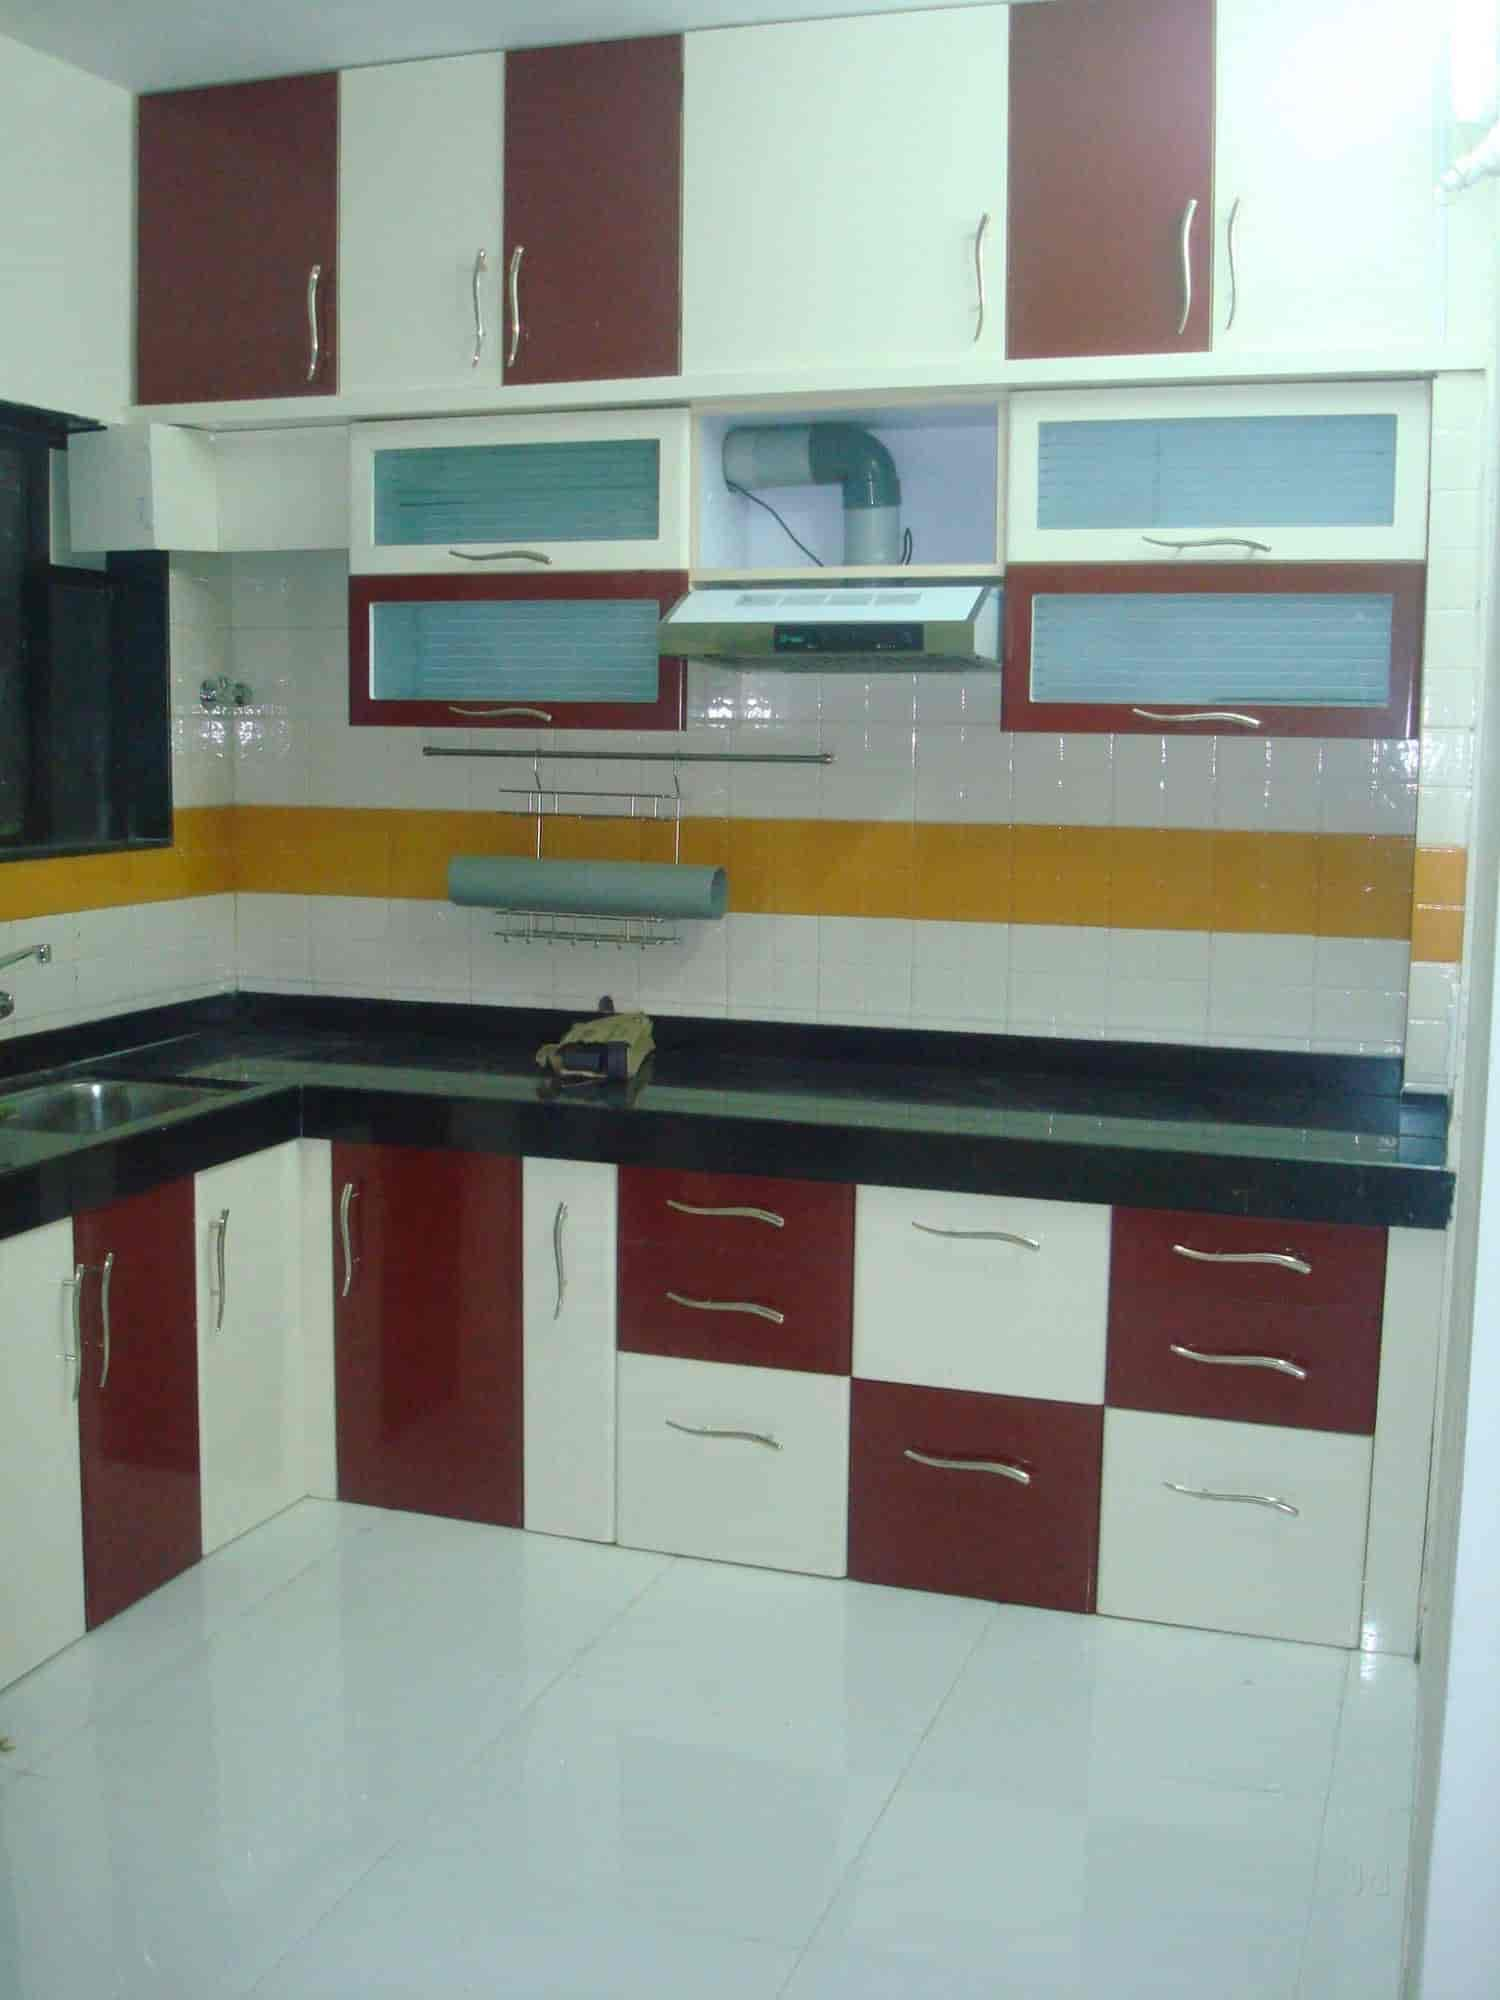 Swami Kitchen Trolleys Photos Moshi Pune Pictures Images